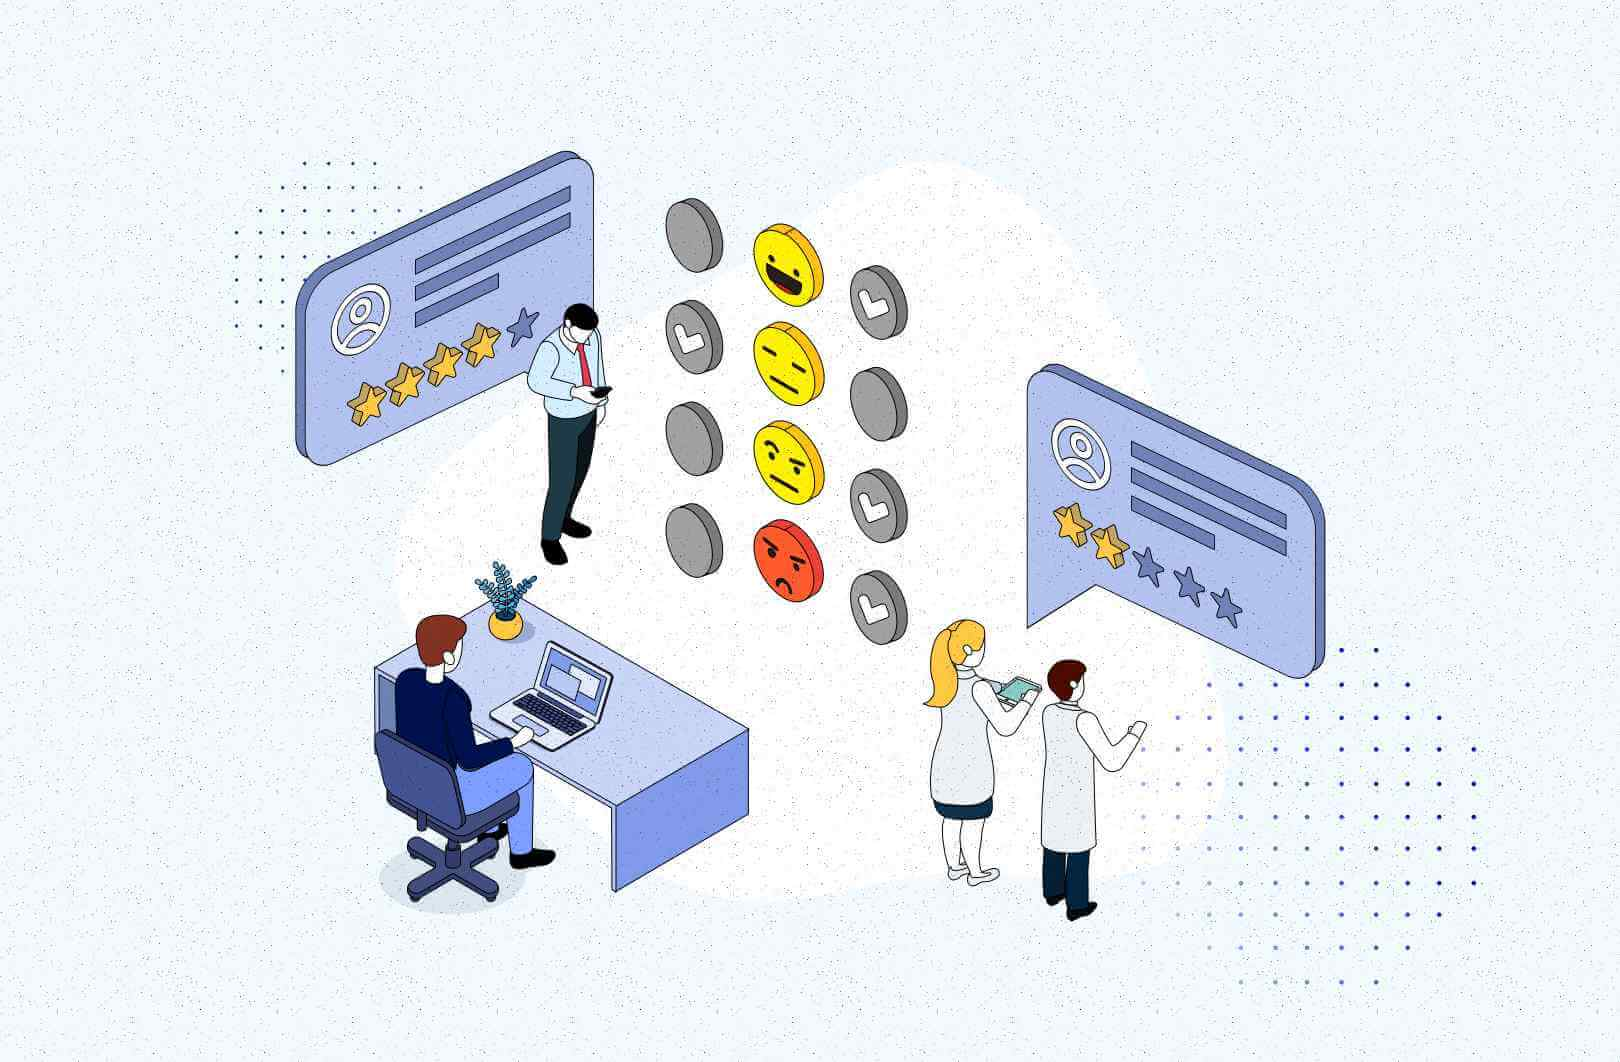 Should you use universal design principles in product design?